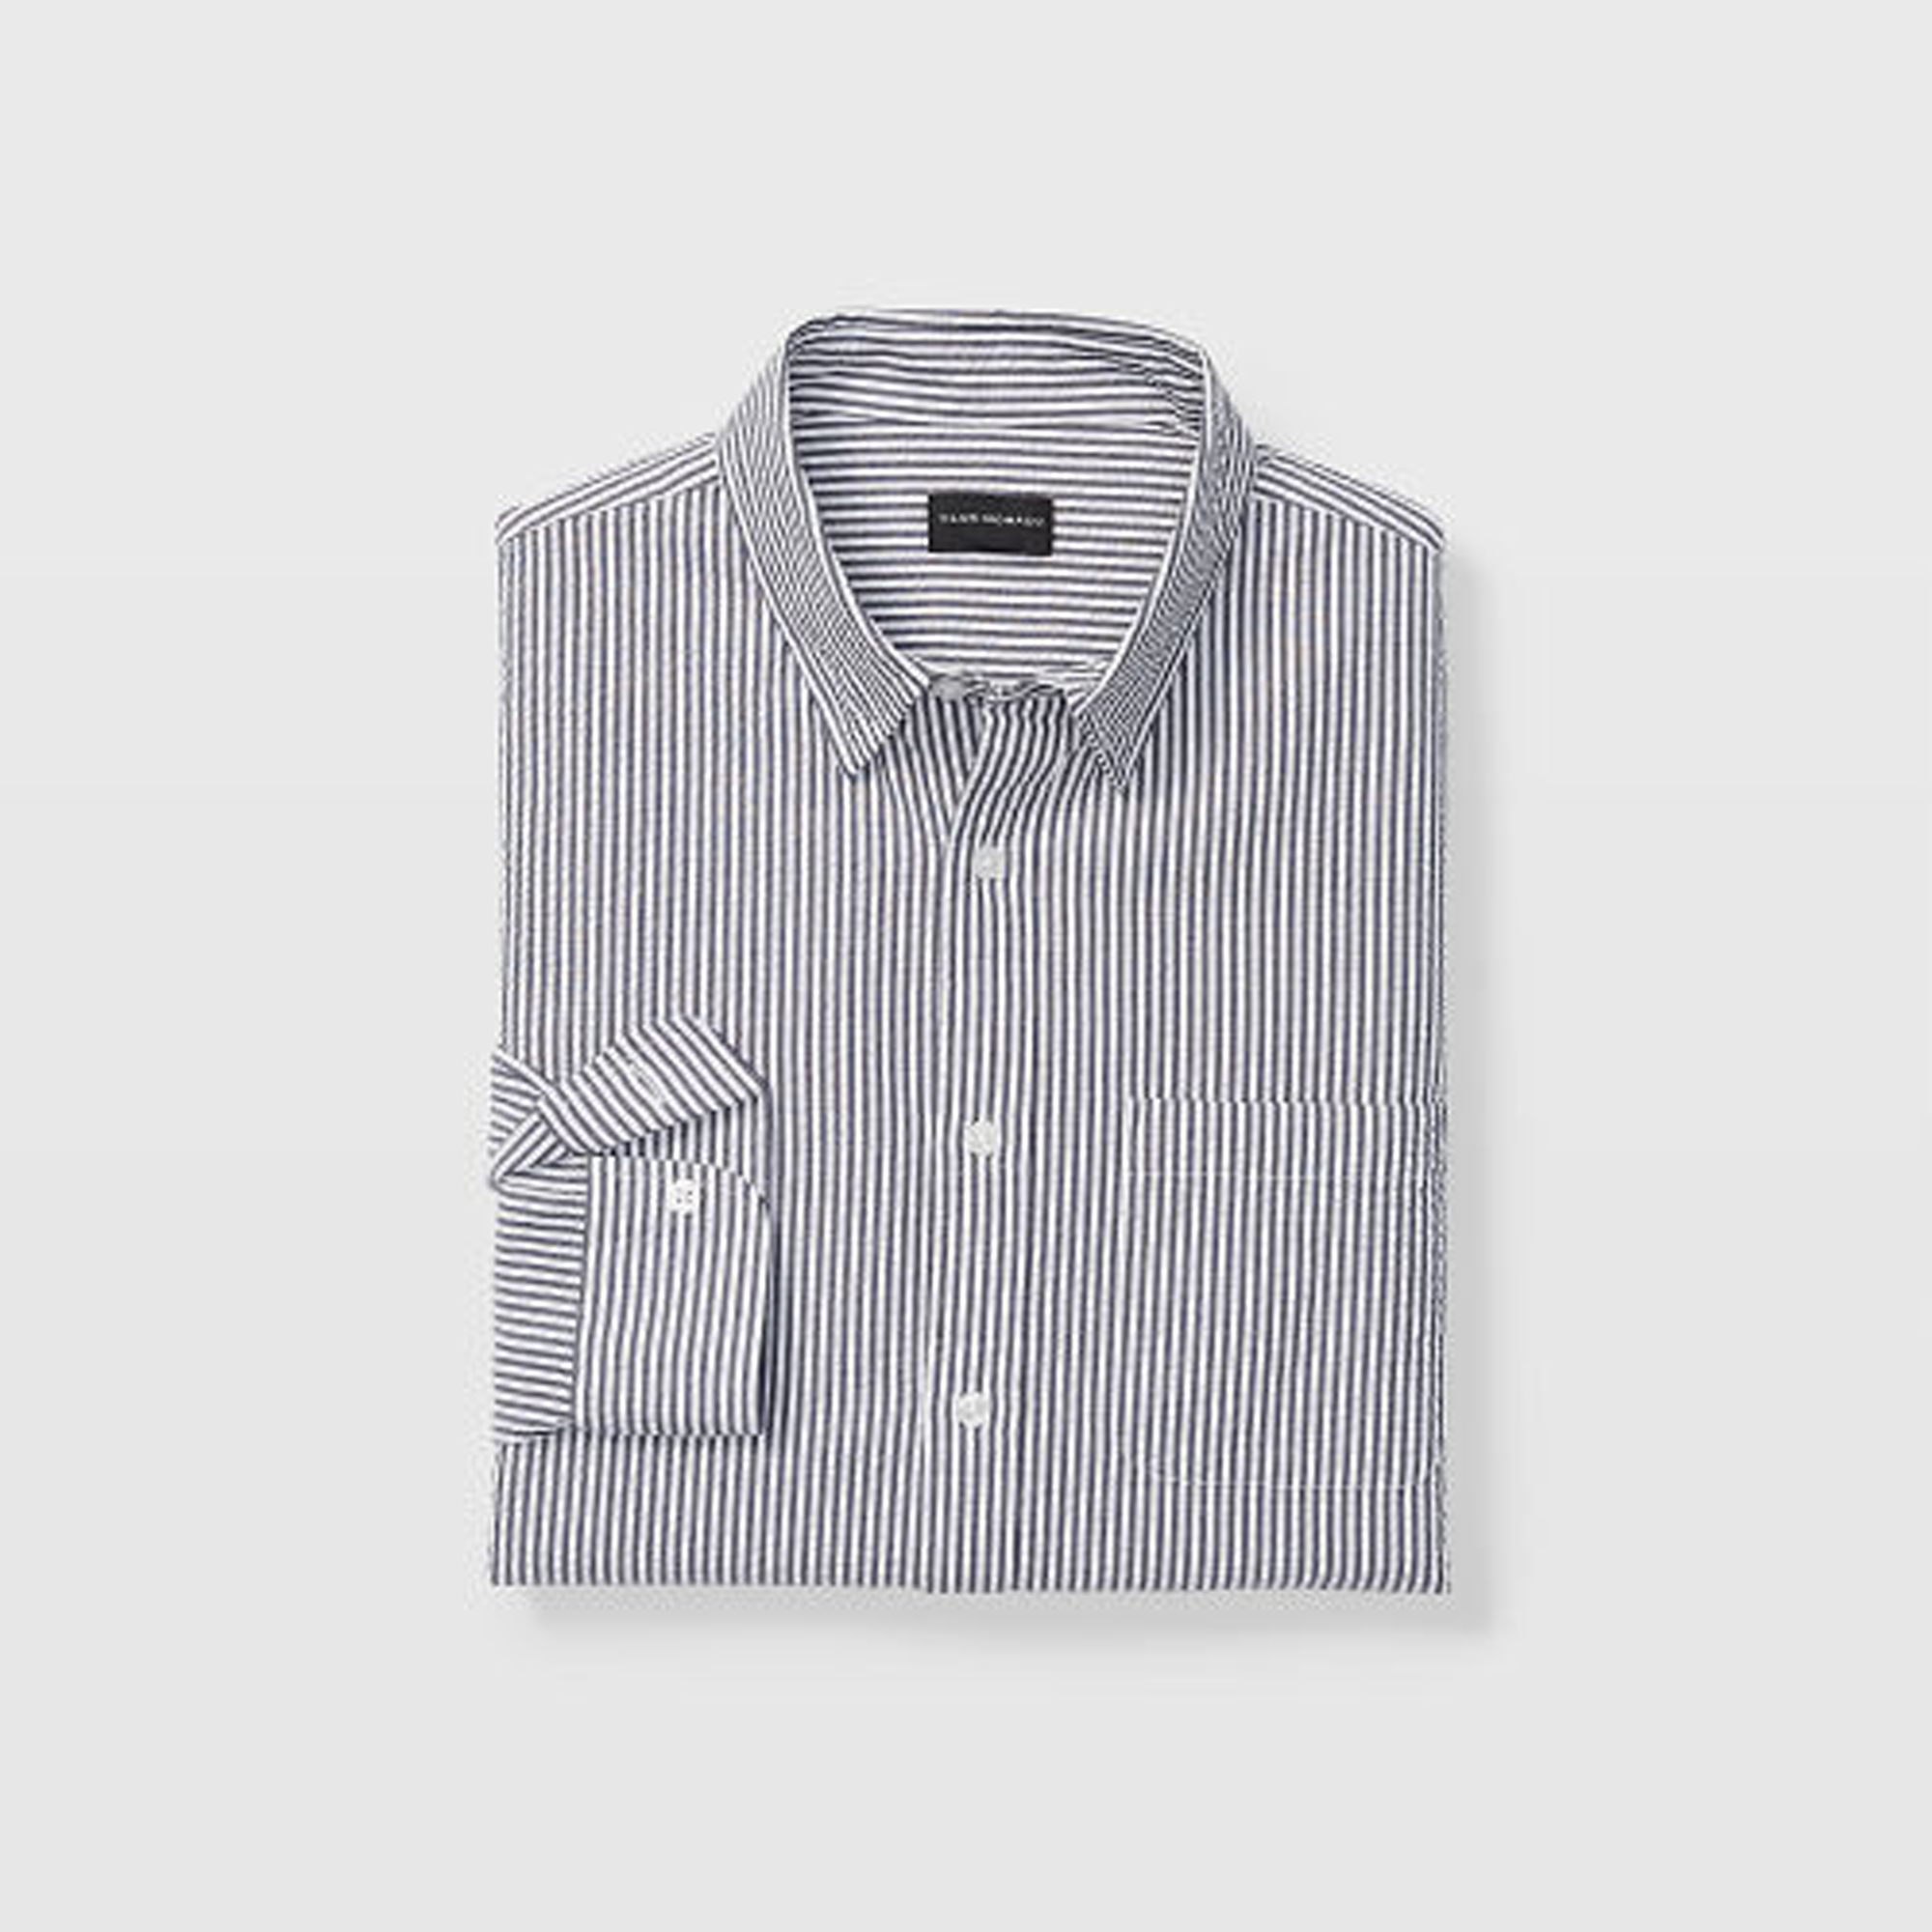 Slim Seersucker Shirt   HK$890